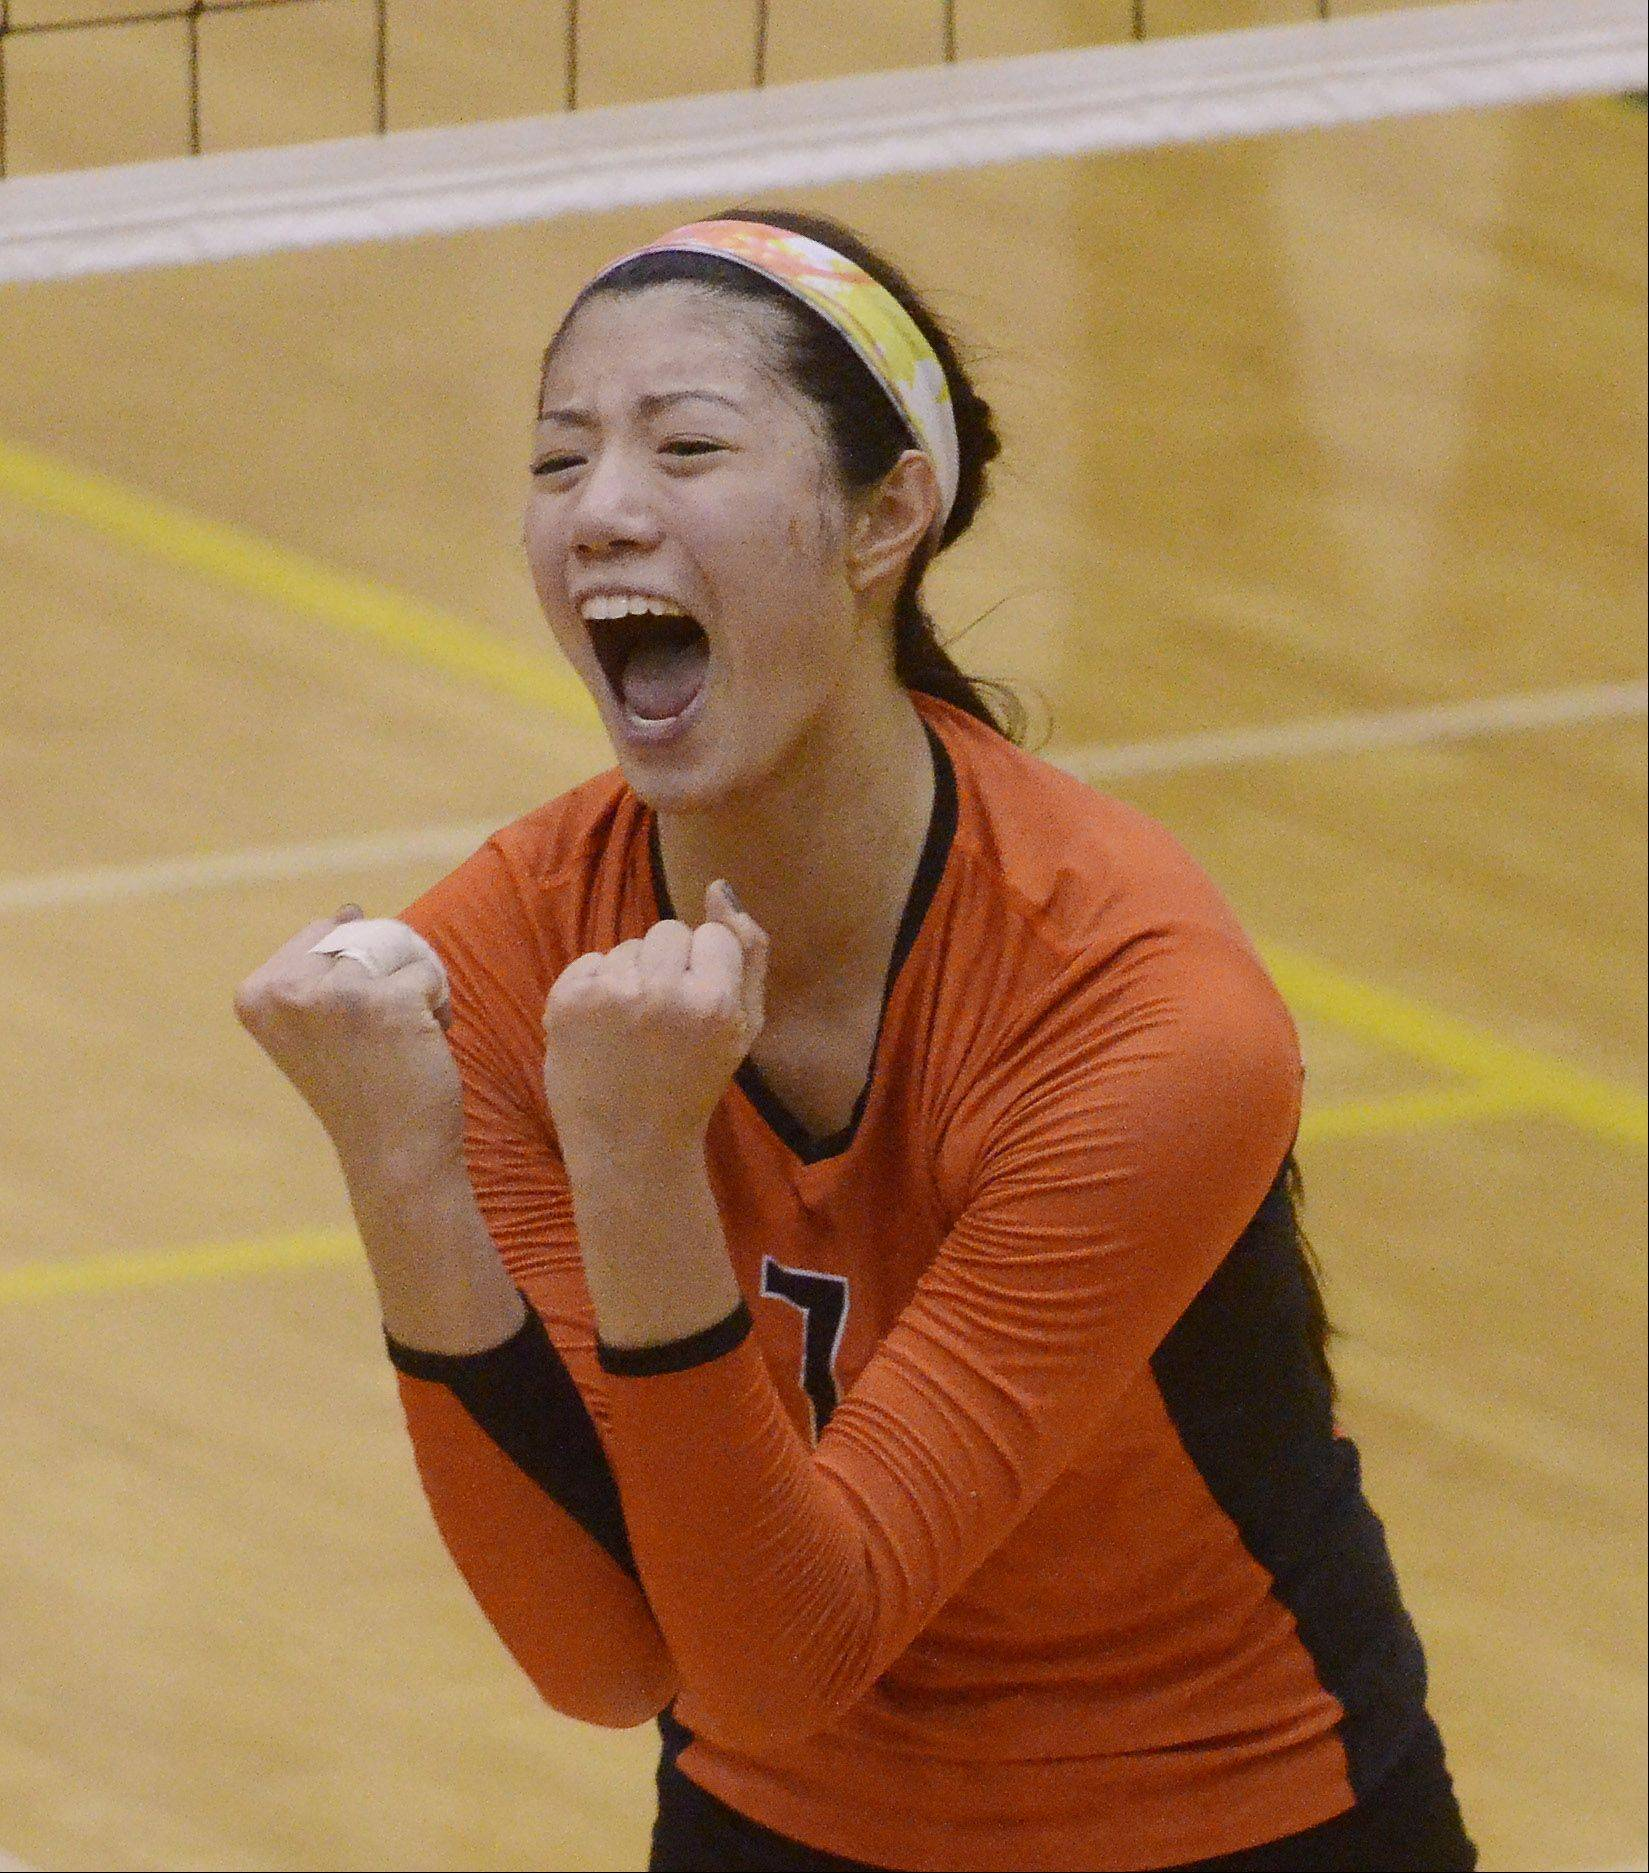 Libertyville's Cindy Zhou celebrates as her team nears victory over Hersey during Tuesday's sectional semifinal at Fremd High School in Palatine.